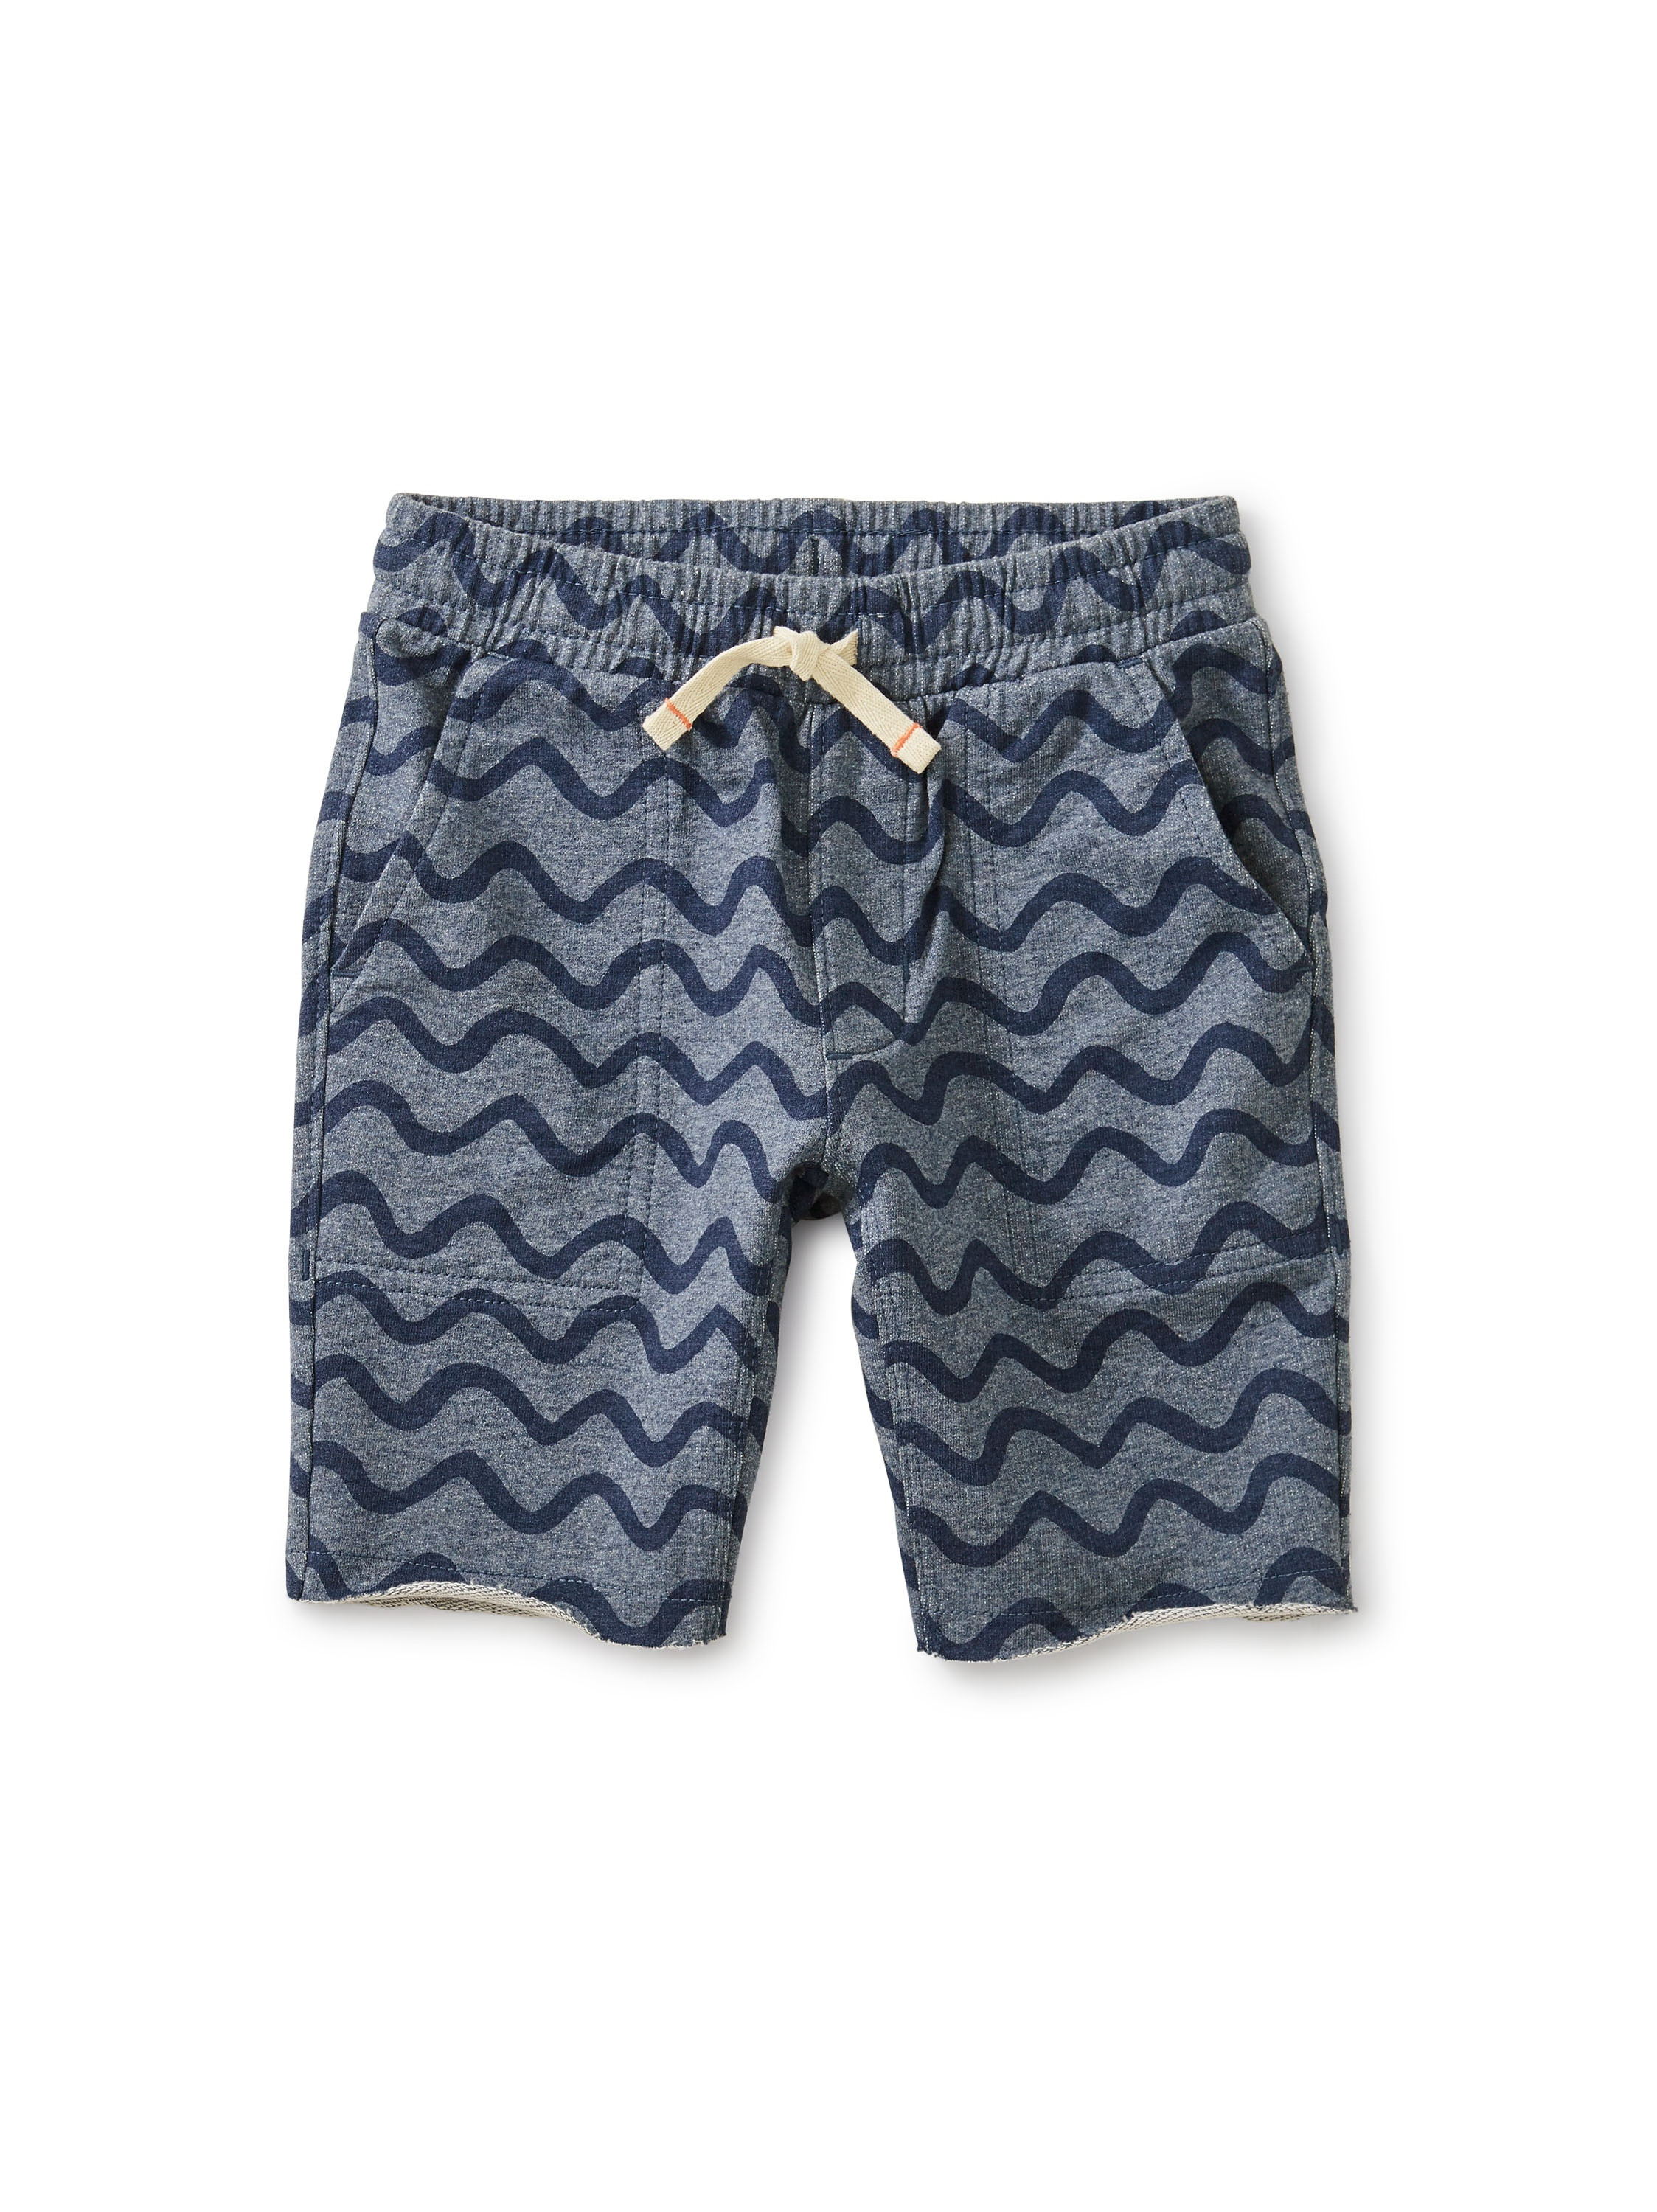 Printed Knit Gym Shorts Aegean Waves